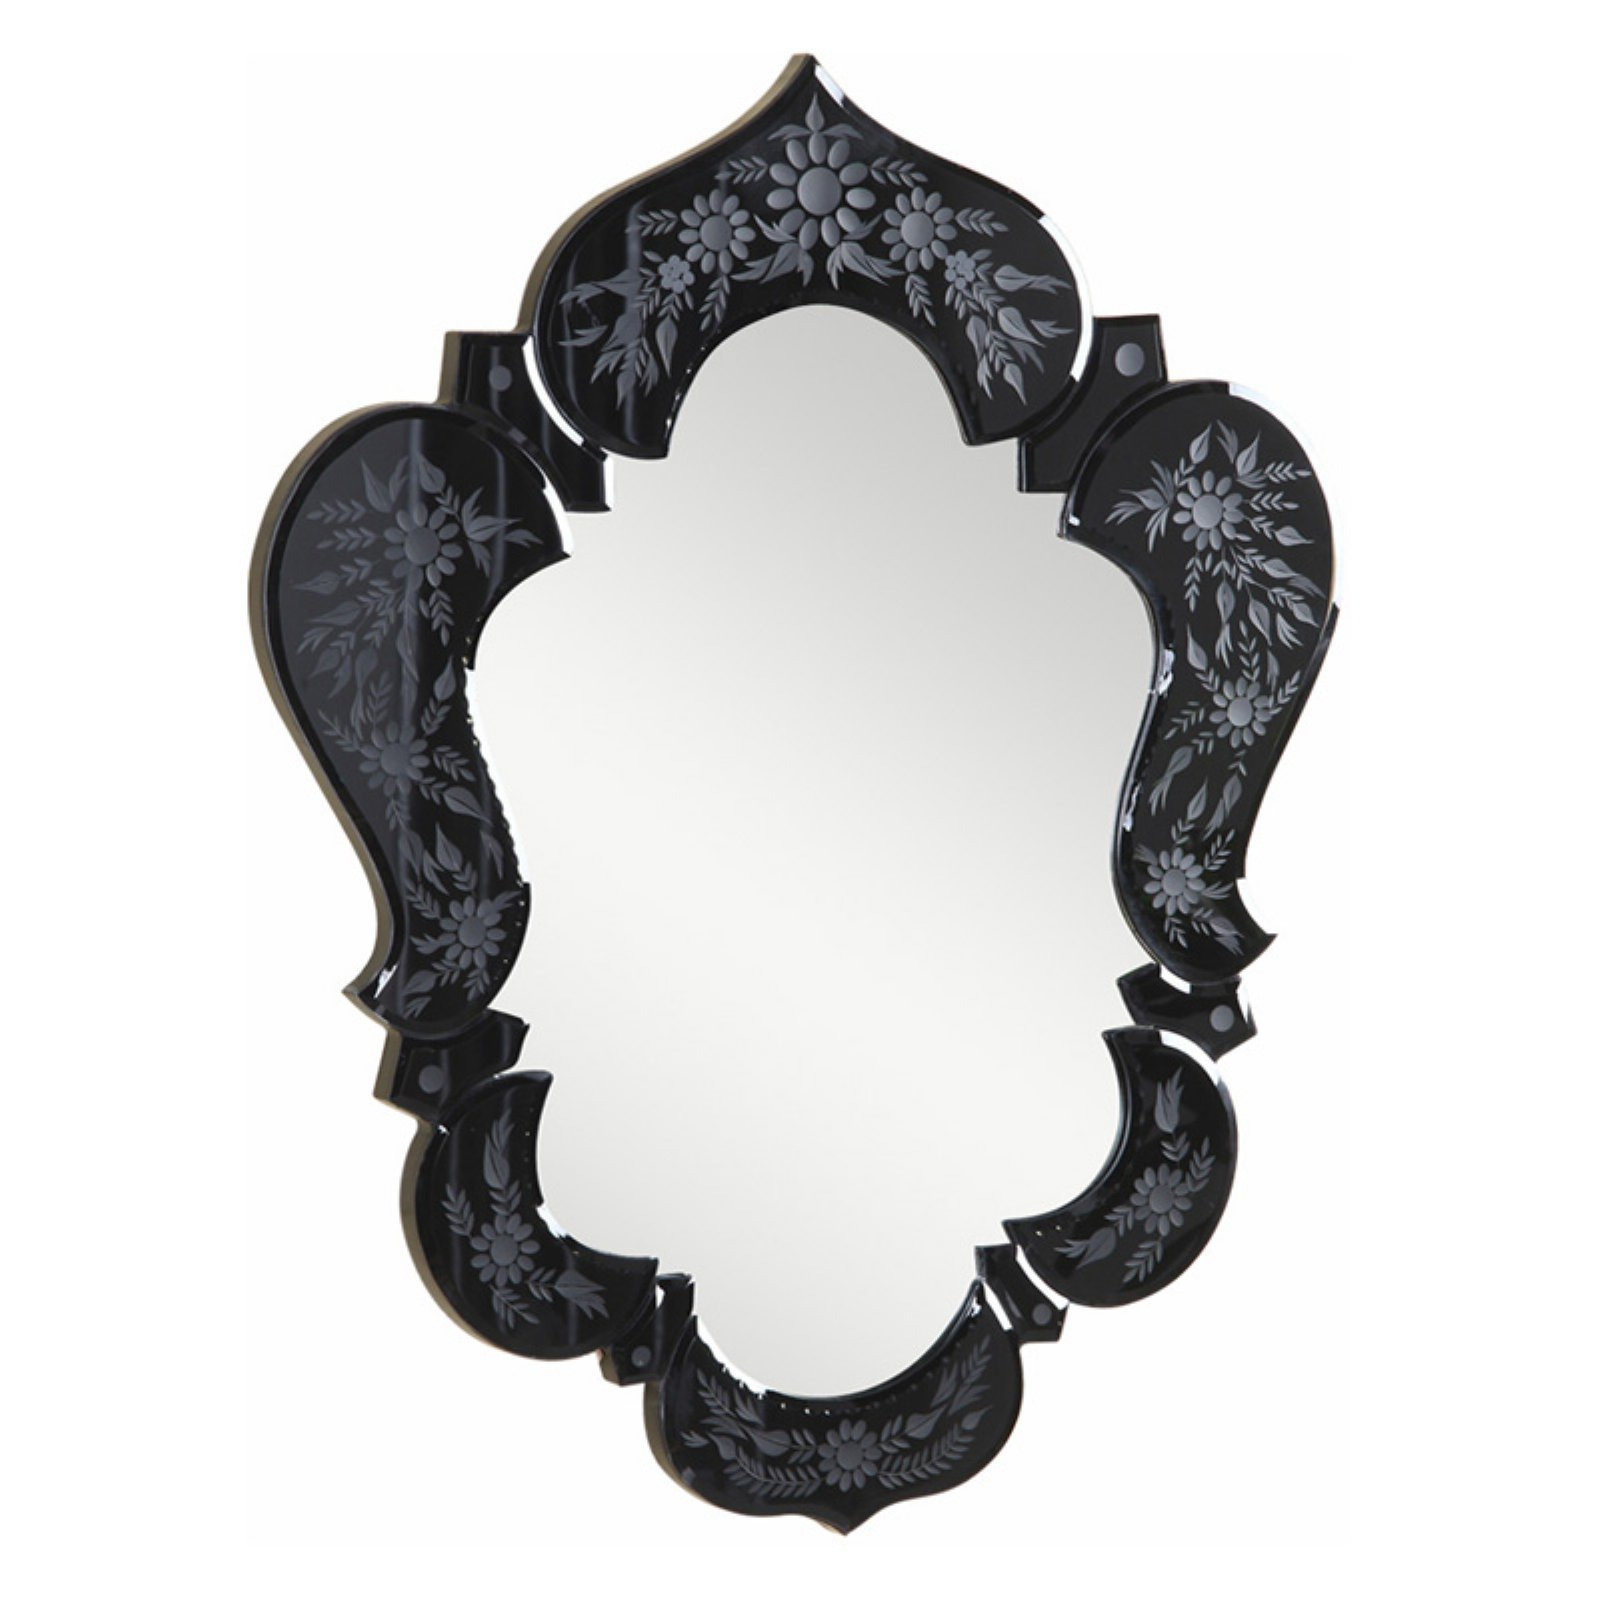 Elegant Furniture & Lighting Venetian Floor Wall Mirror - 20.7W x 25.6H in.